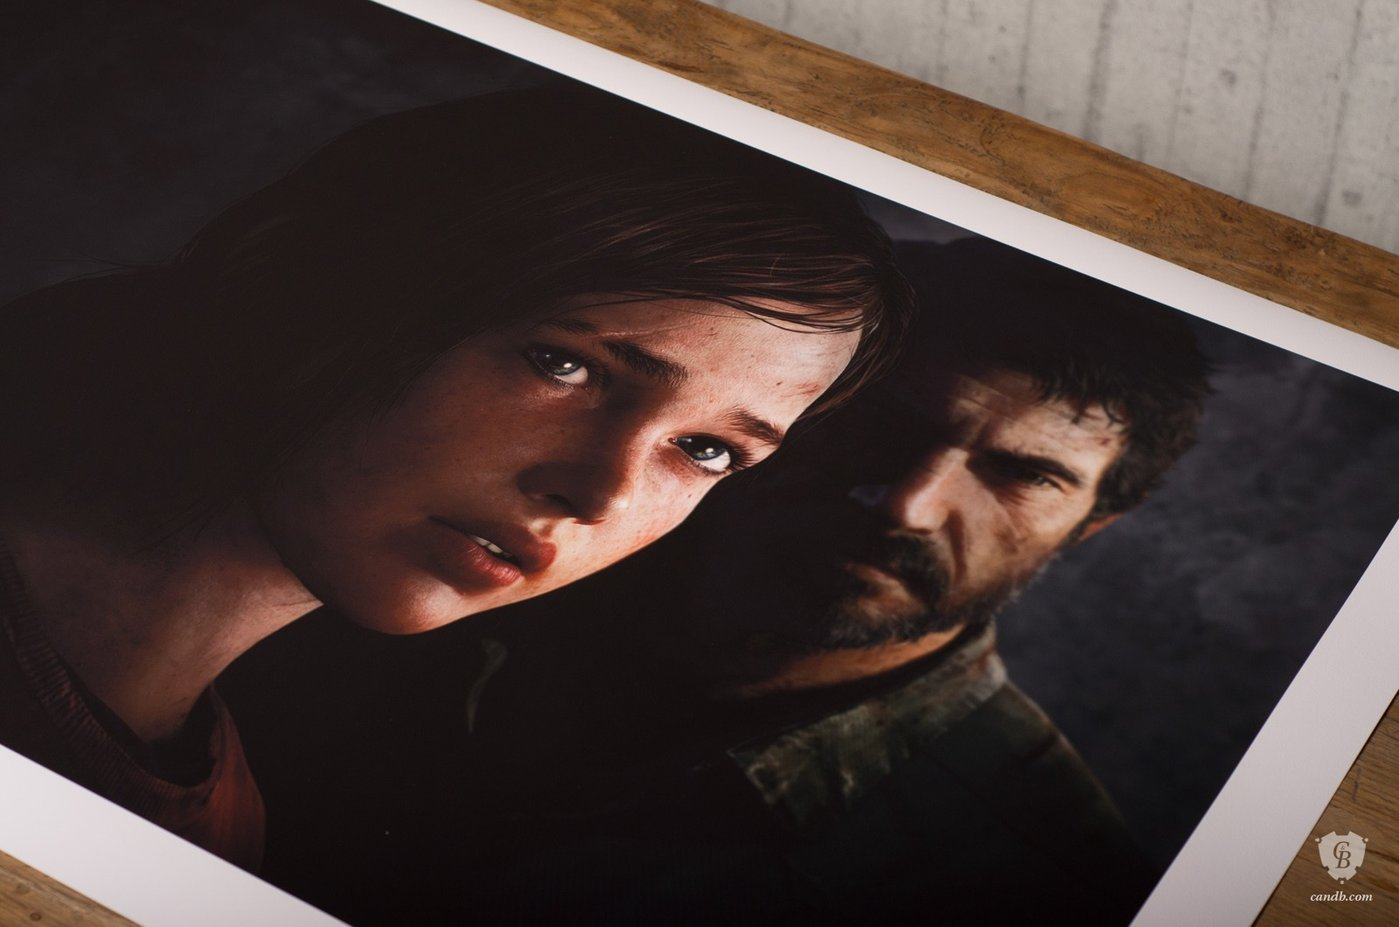 ellie-joel_last-of-us_naughty-dog_cook-and-becker_print1600-1.jpg